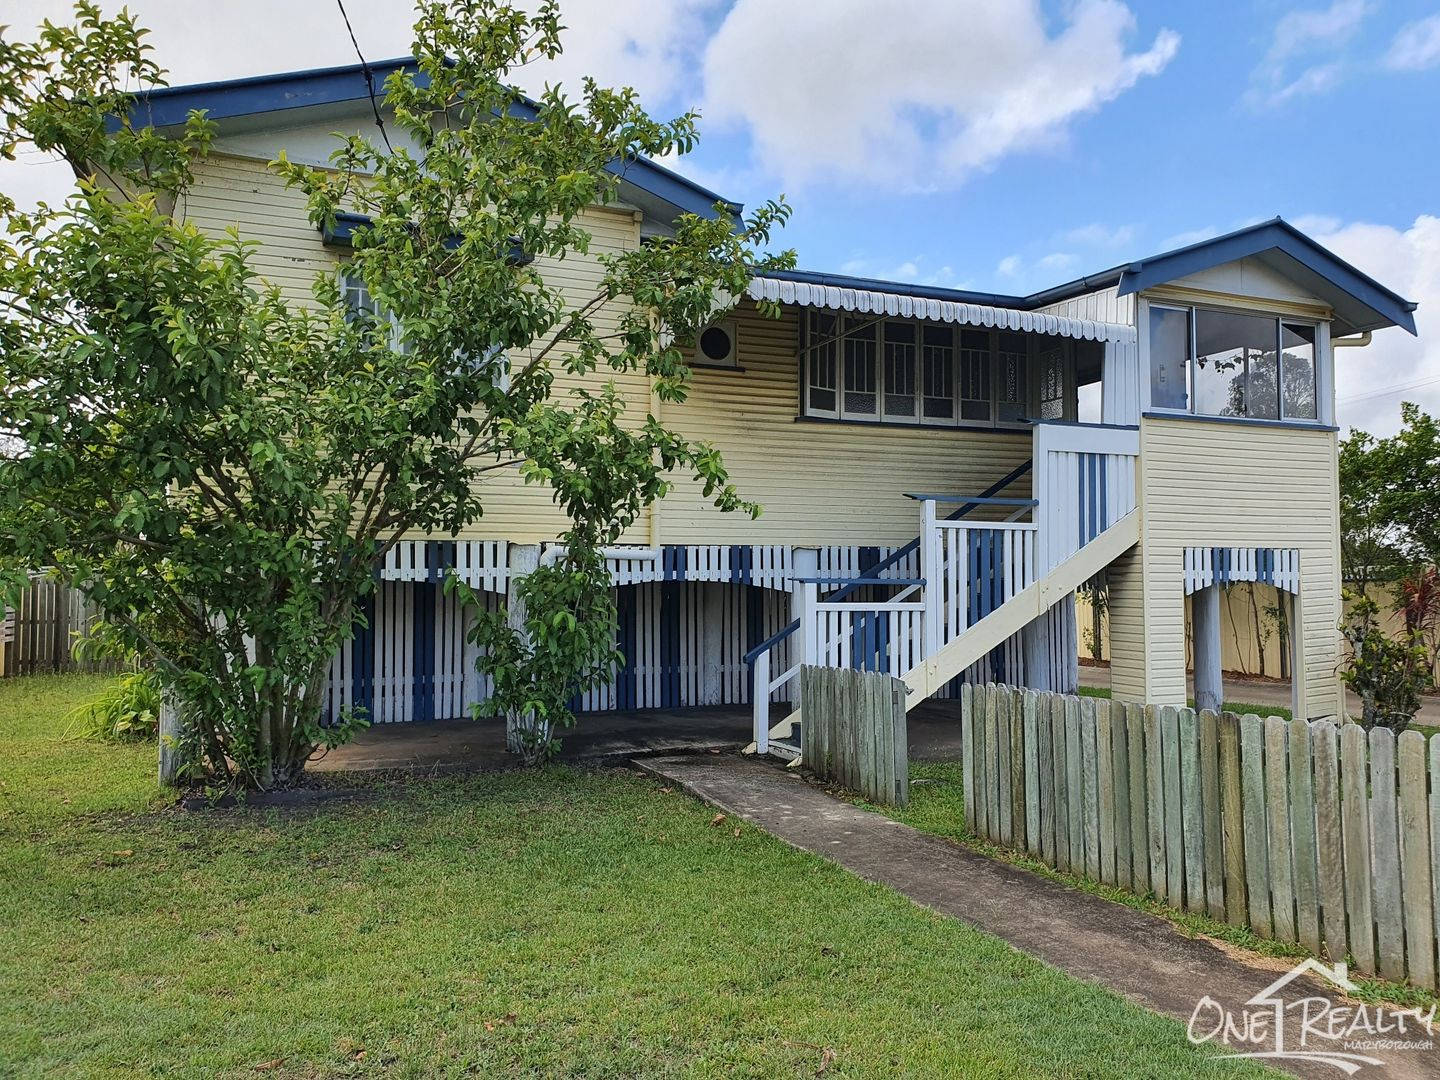 1/200 John Street, Maryborough QLD 4650, Image 0